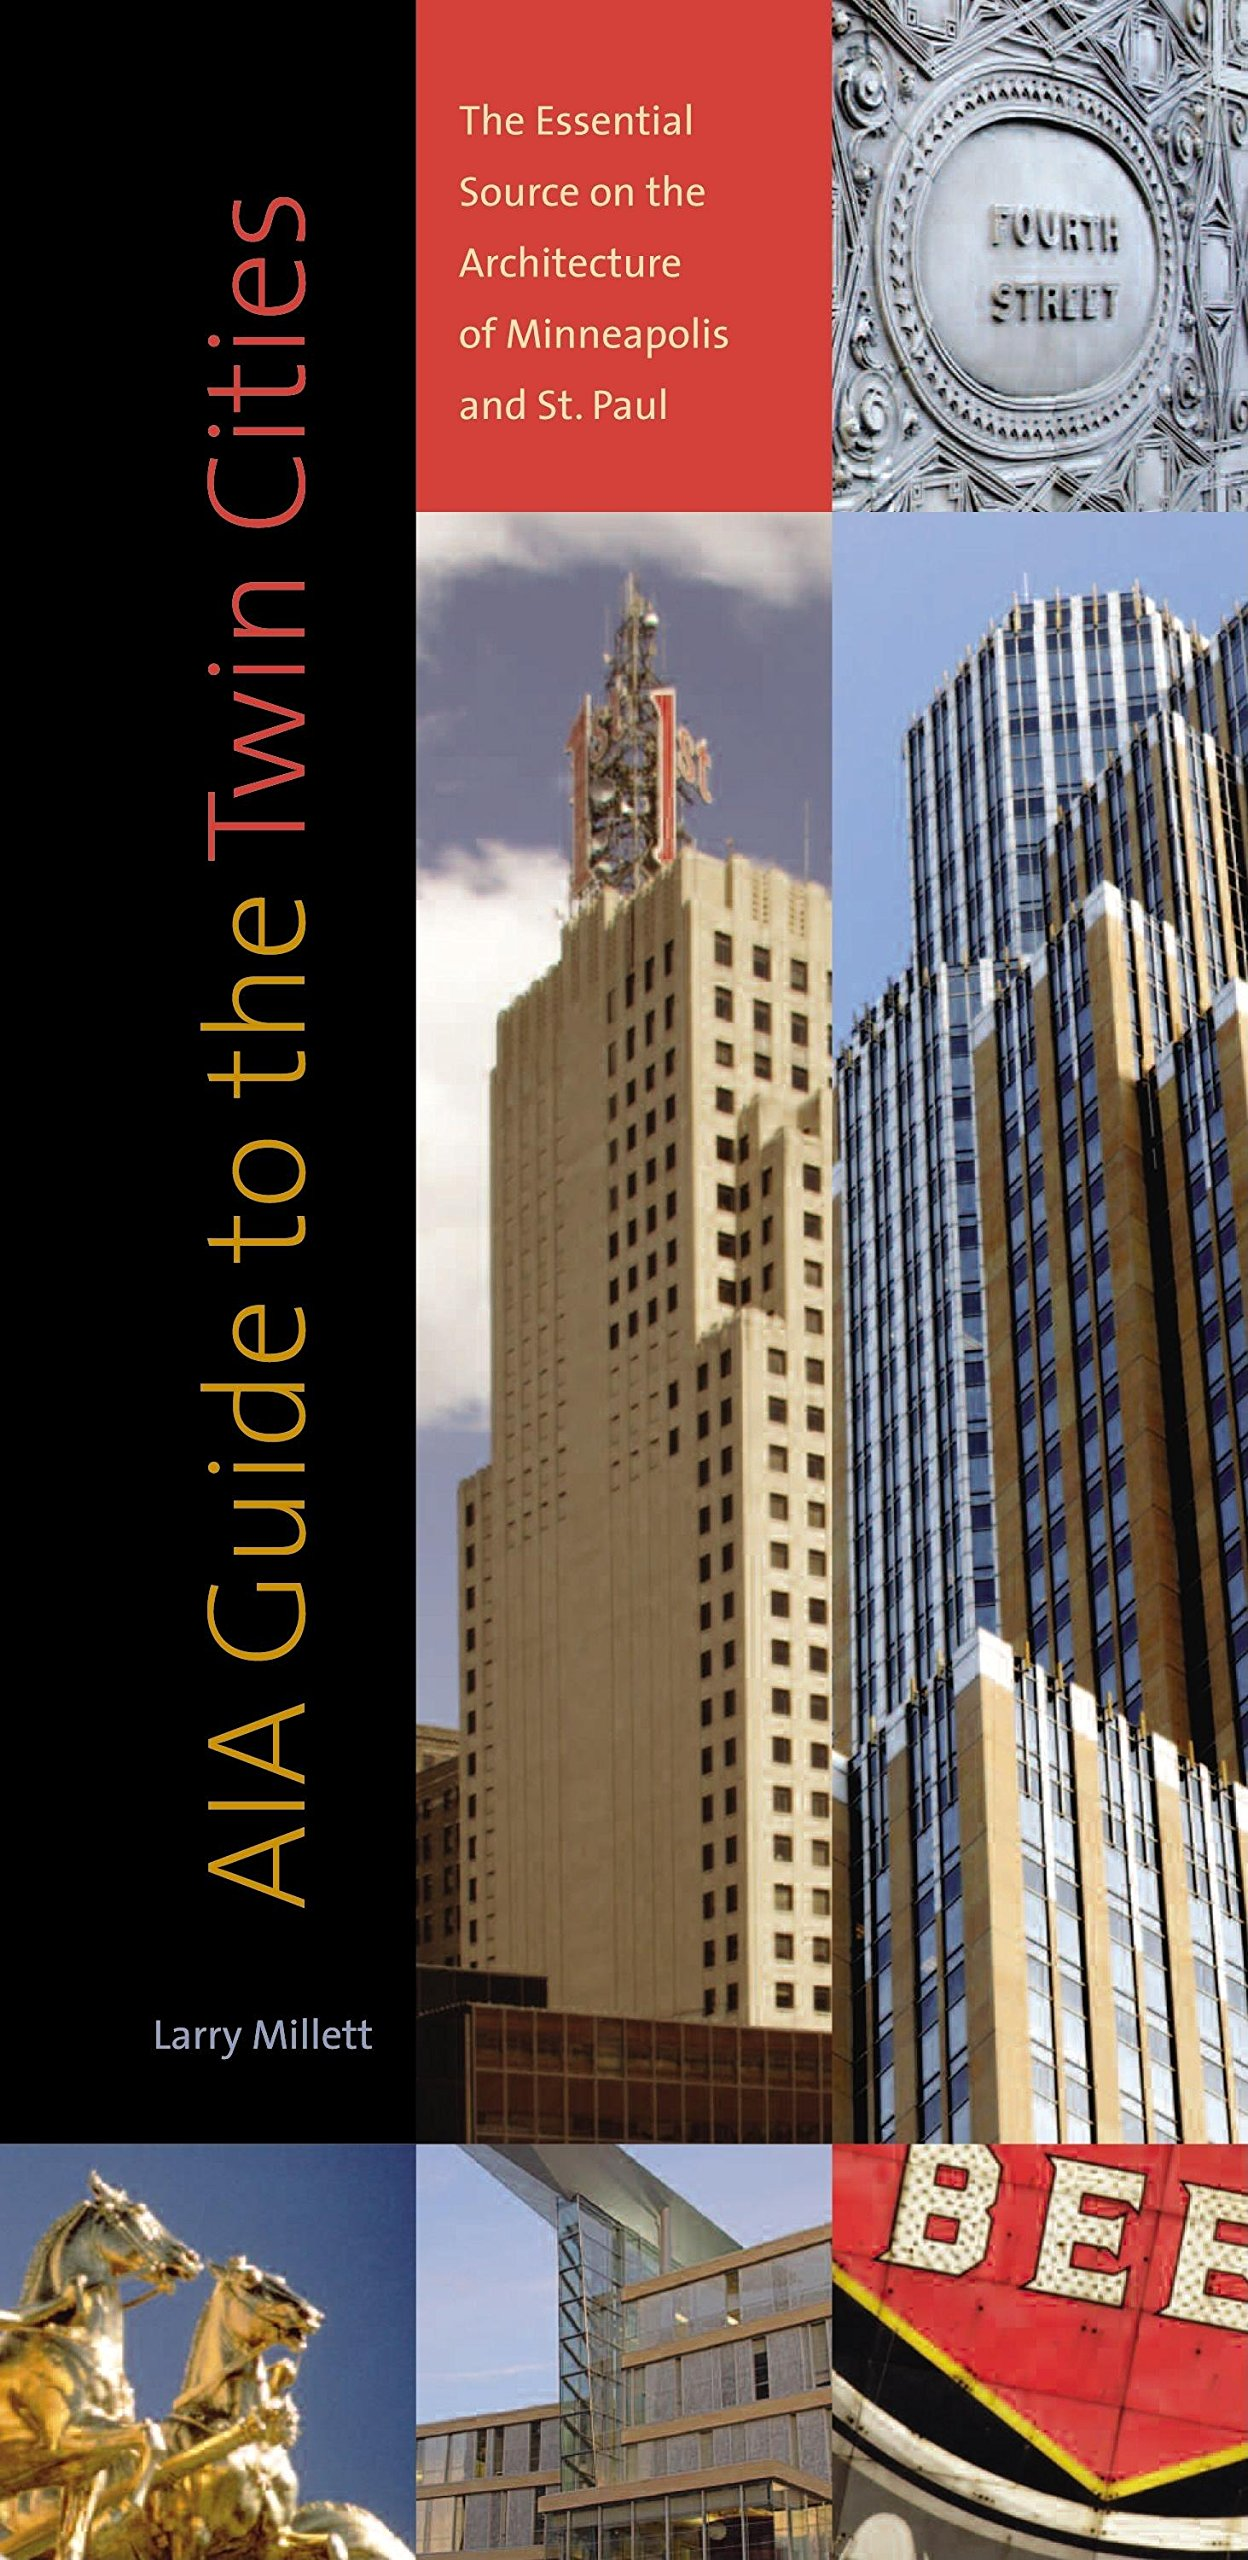 AIA Guide to the Twin Cities: The Essential Source on the